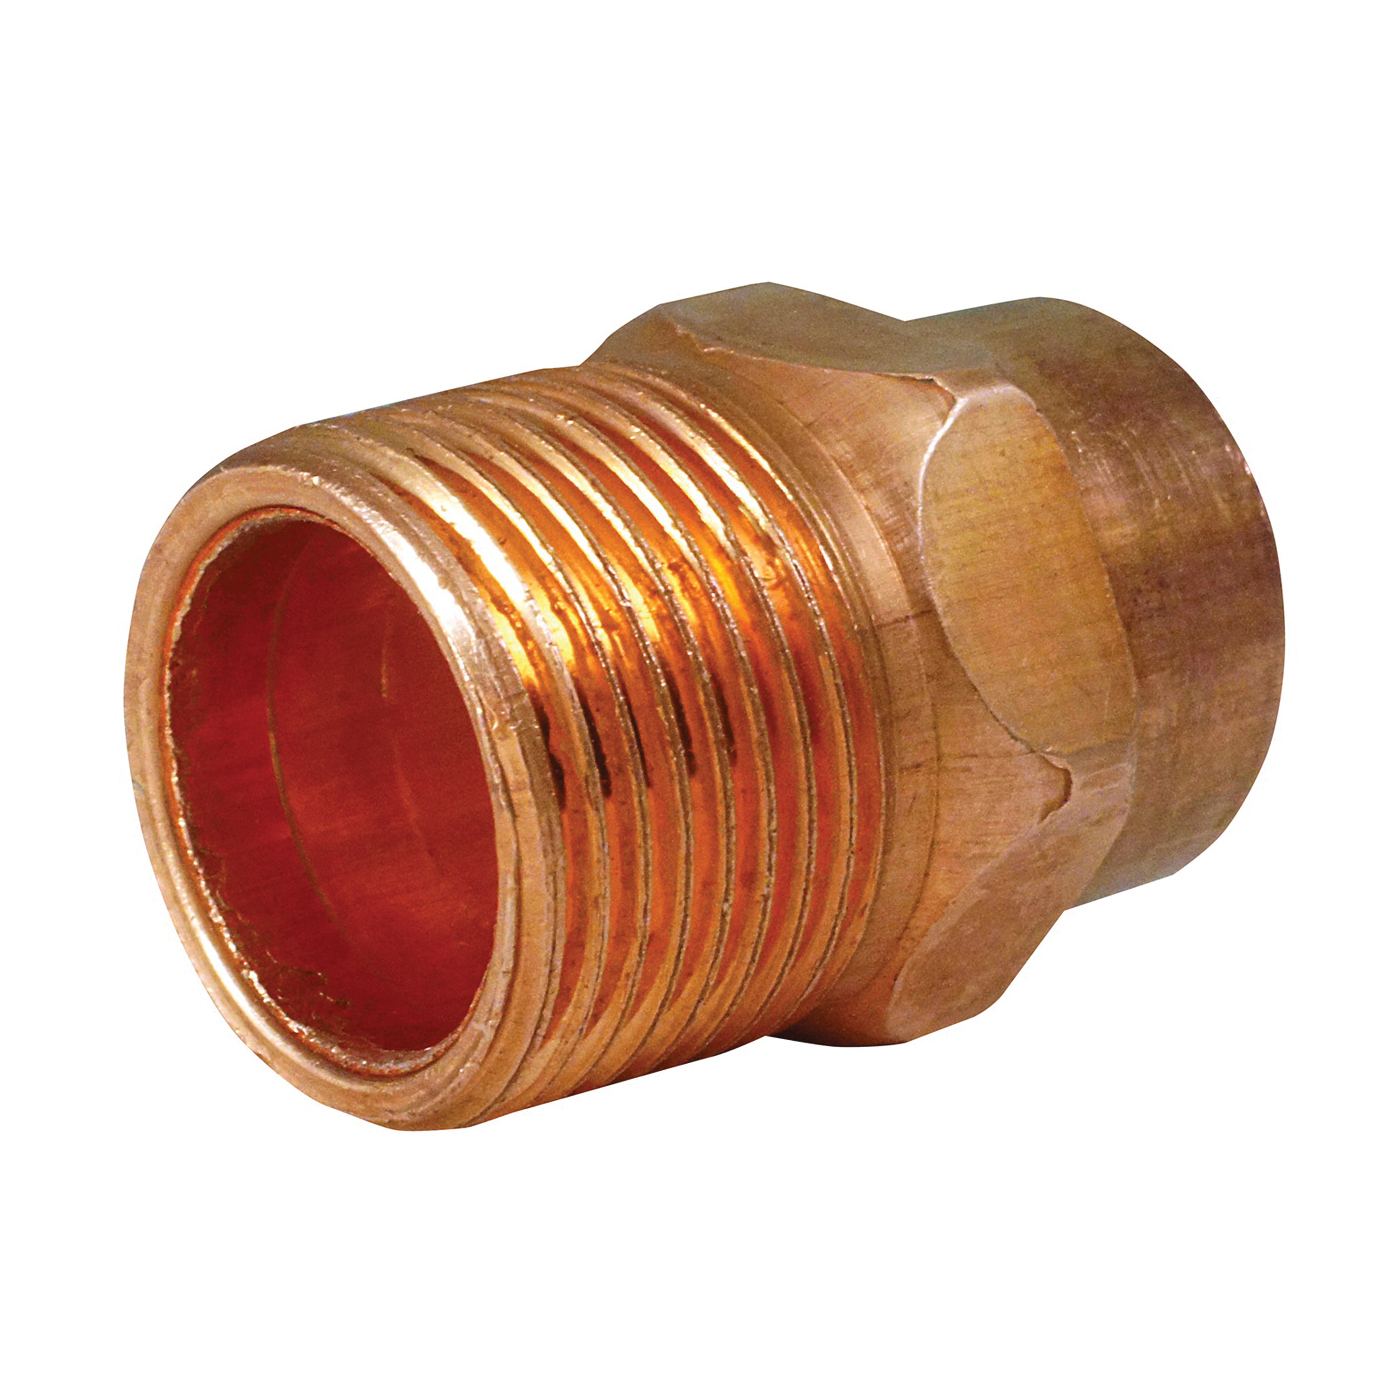 Picture of EPC 104 Series 30300 Pipe Adapter, 3/8 in, Sweat x MNPT, Copper